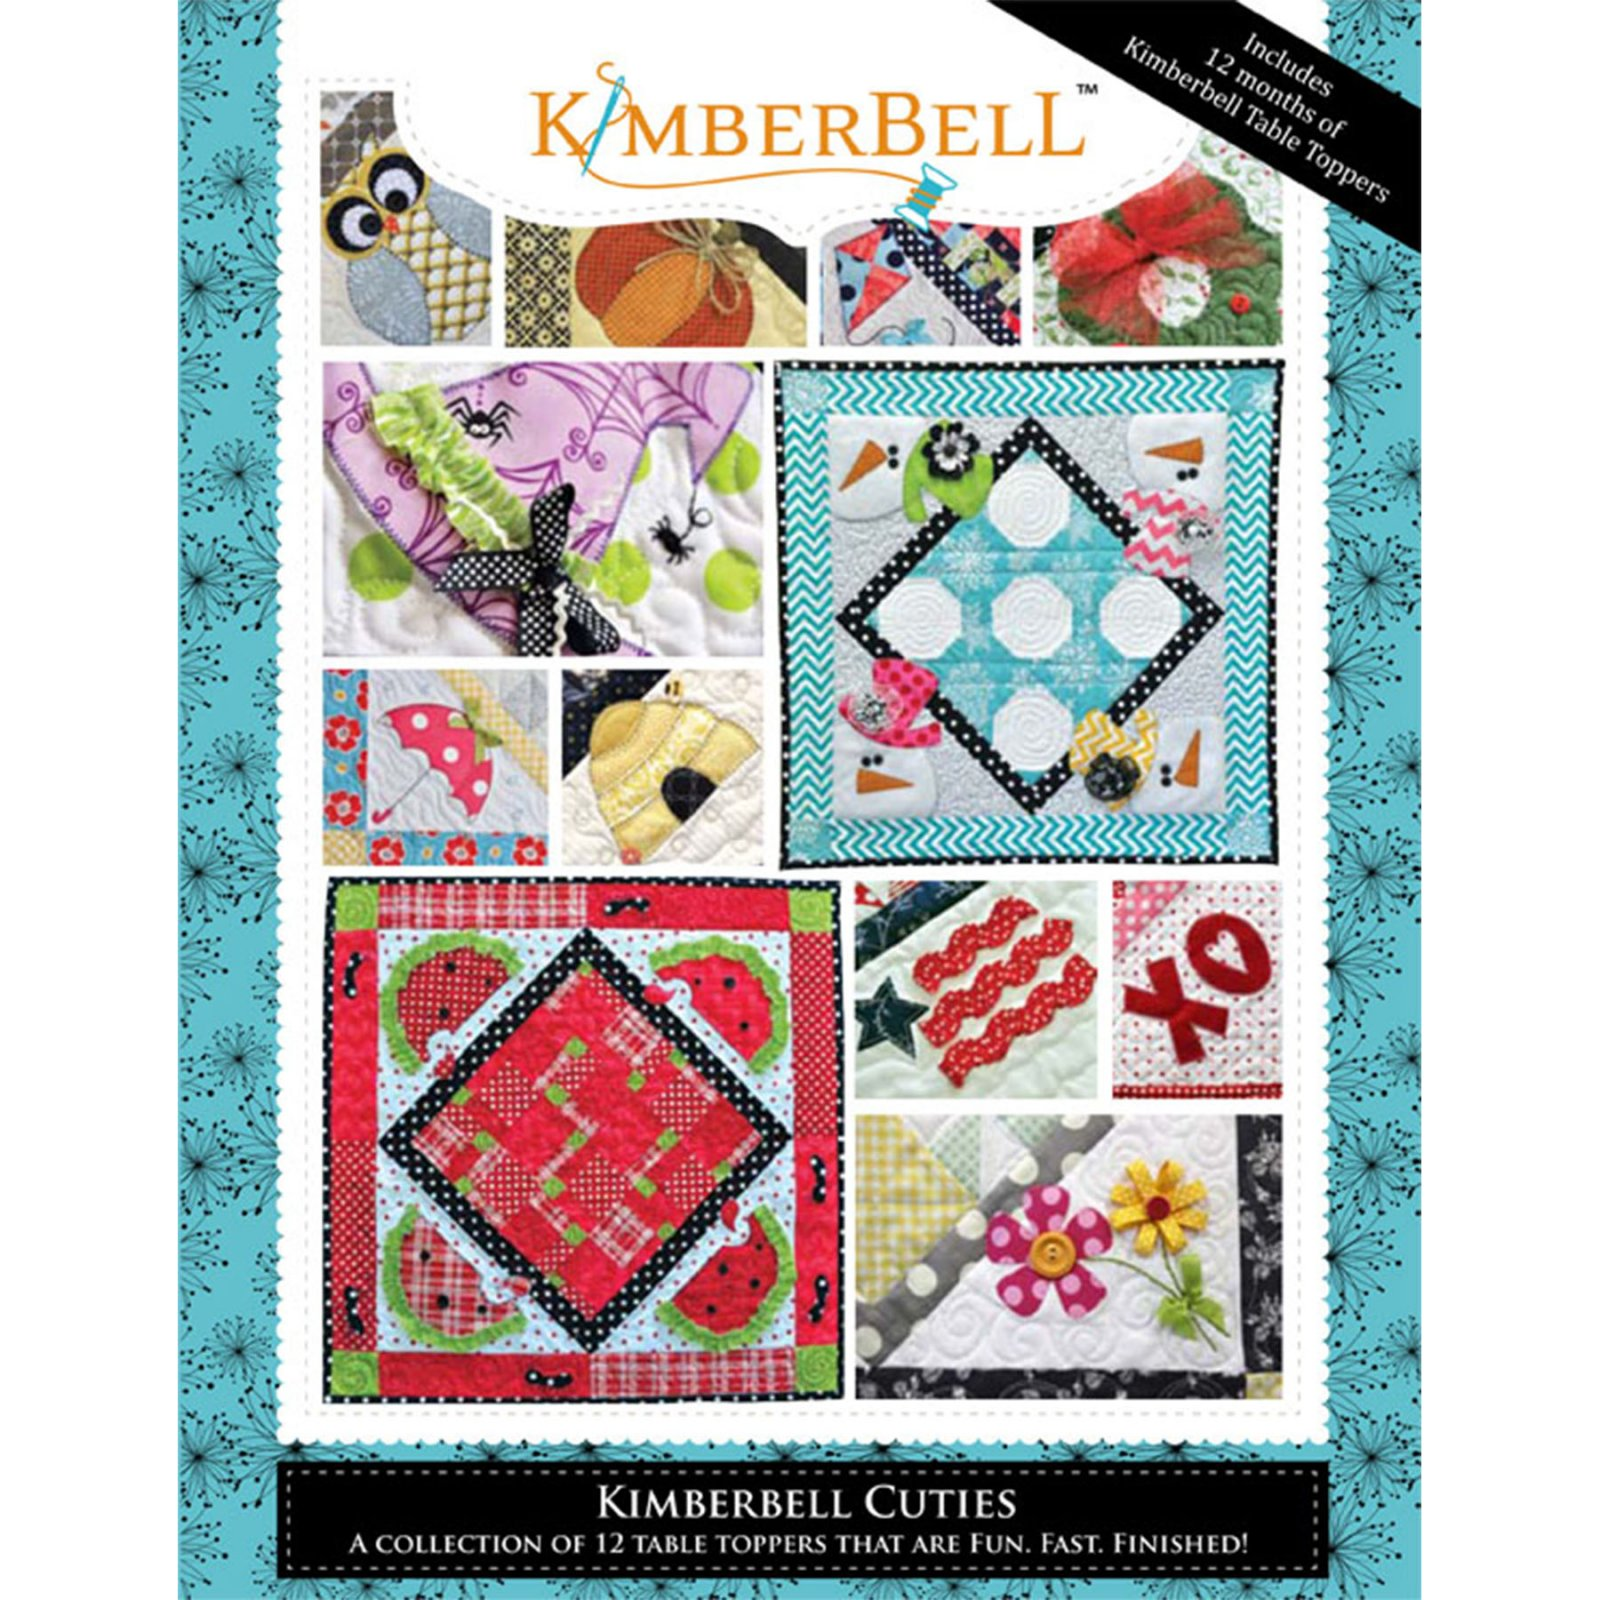 Kimberbell Cuties Seasonal Table Topper Pattern Book